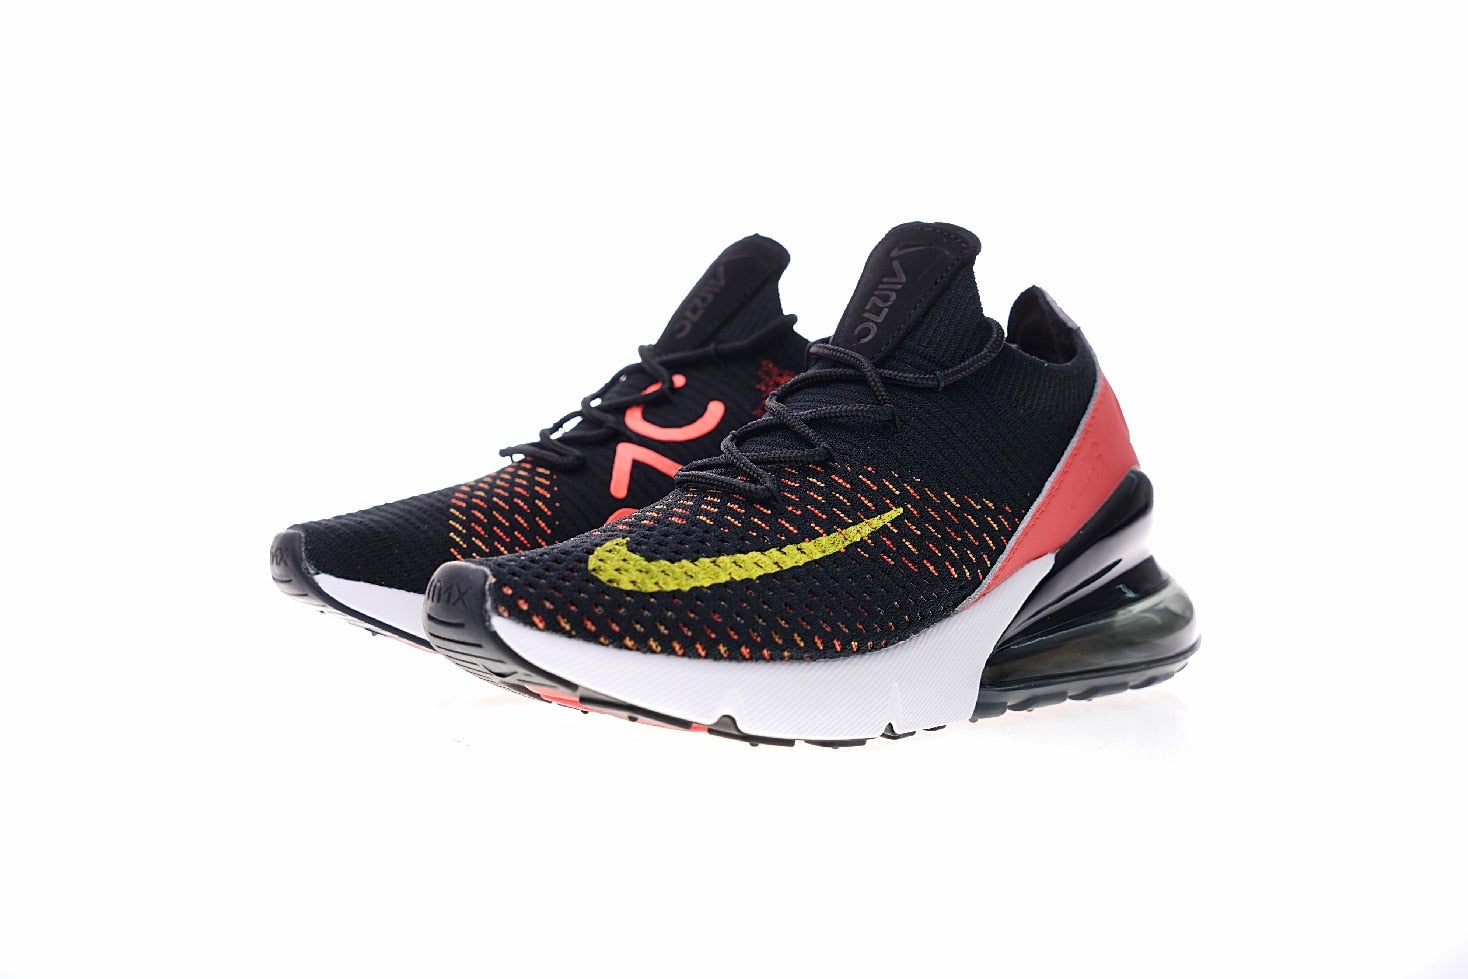 new york 6ac70 08e94 Air Max 270 Flyknit Women s Running Shoes AH6803-301